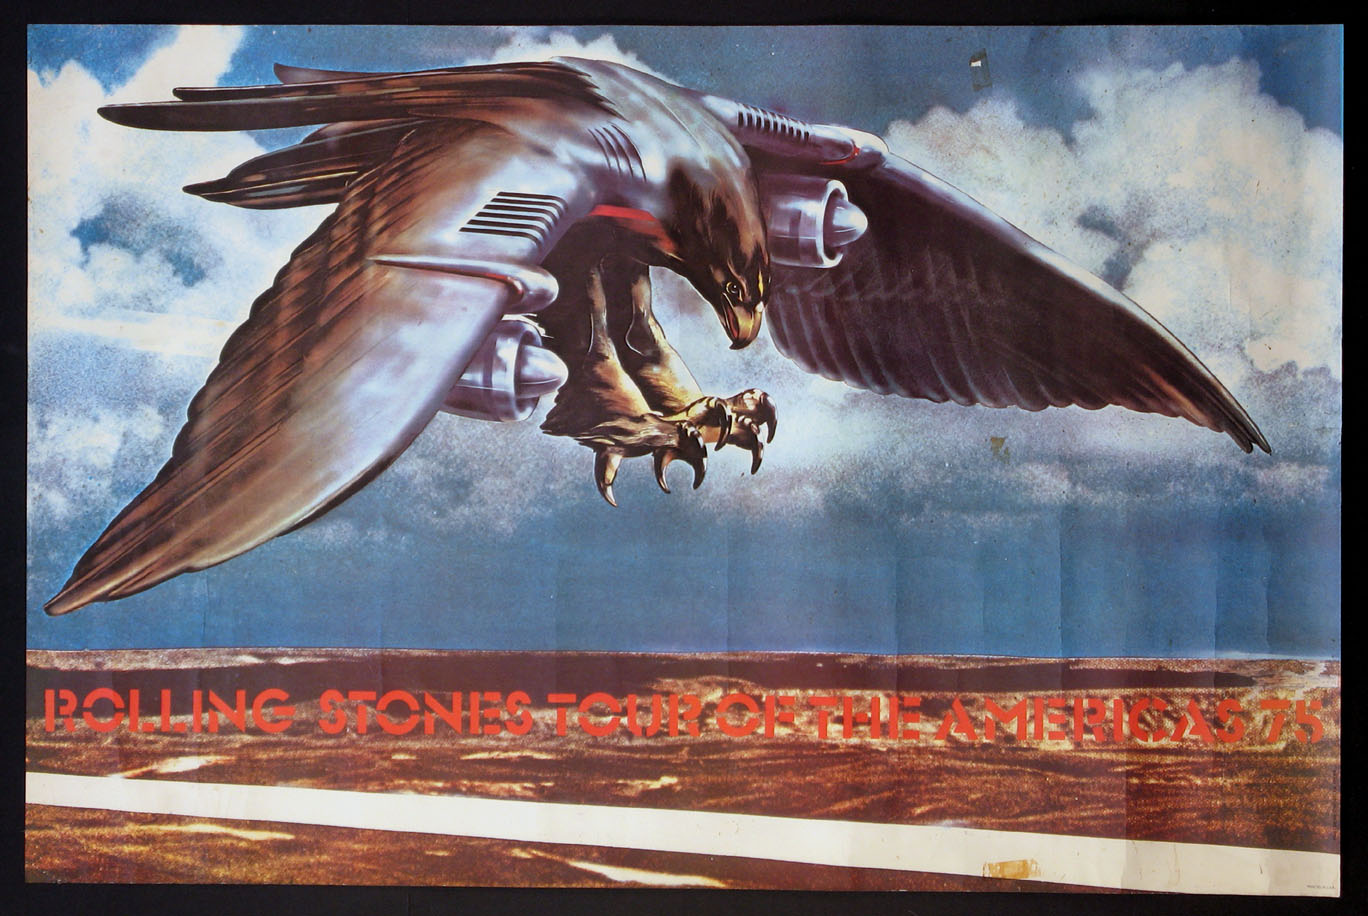 ROLLING STONES VINTAGE 1975 TOUR OF THE AMERICAS POSTER @ FilmPosters.com